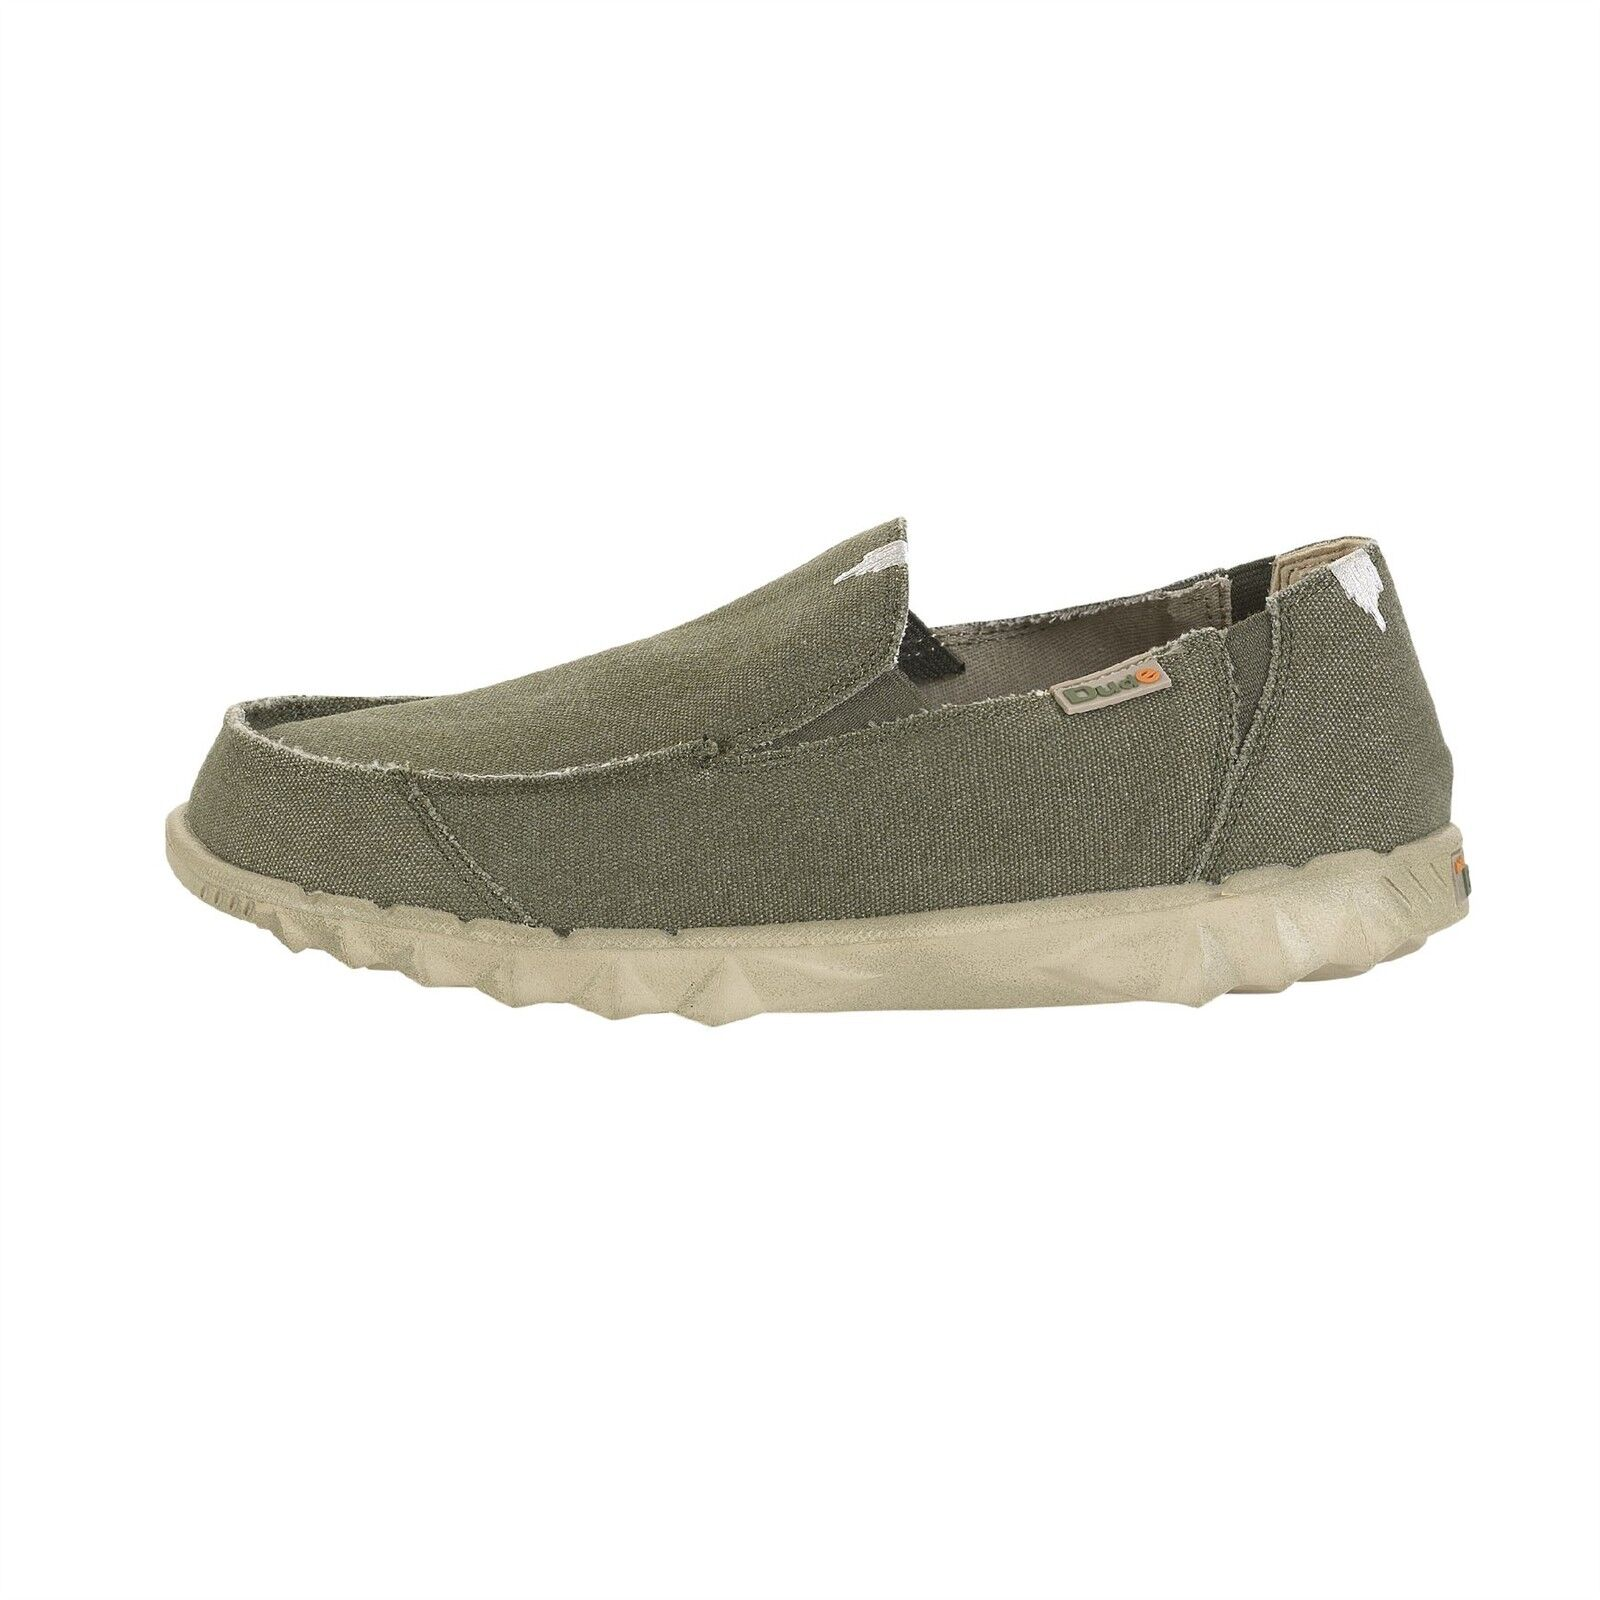 DUDE shoes Farty Classic Mesh Musk Slip On shoes   Mule in UK6 to UK15